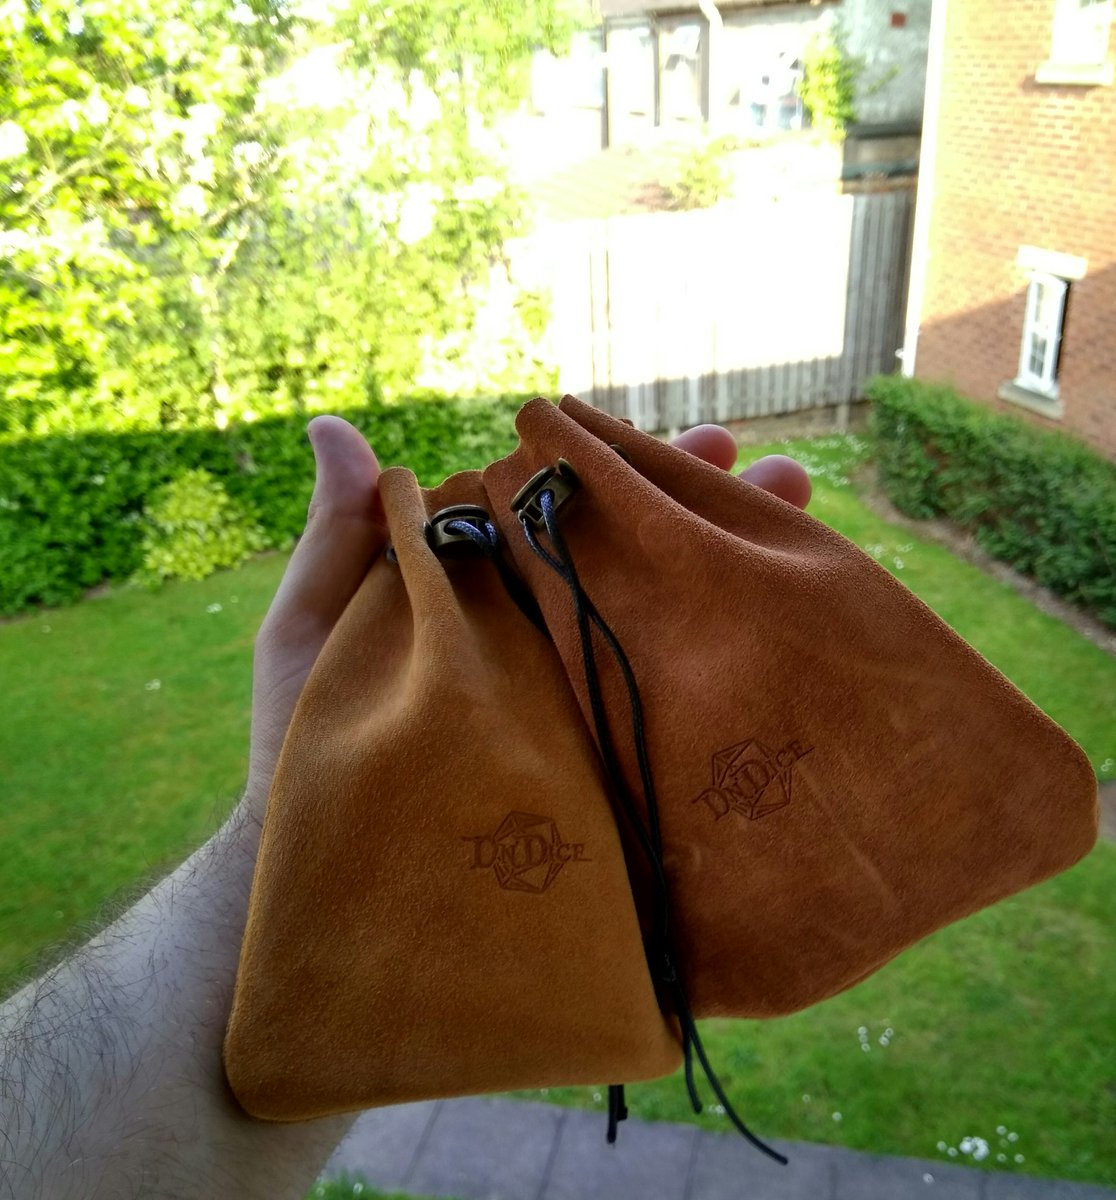 Some pictures of our new dice pouches! Thick suede with metal eyelets and leather cord, tough enough for metal dice :D #dice <br>http://pic.twitter.com/5K1qwOhyaU